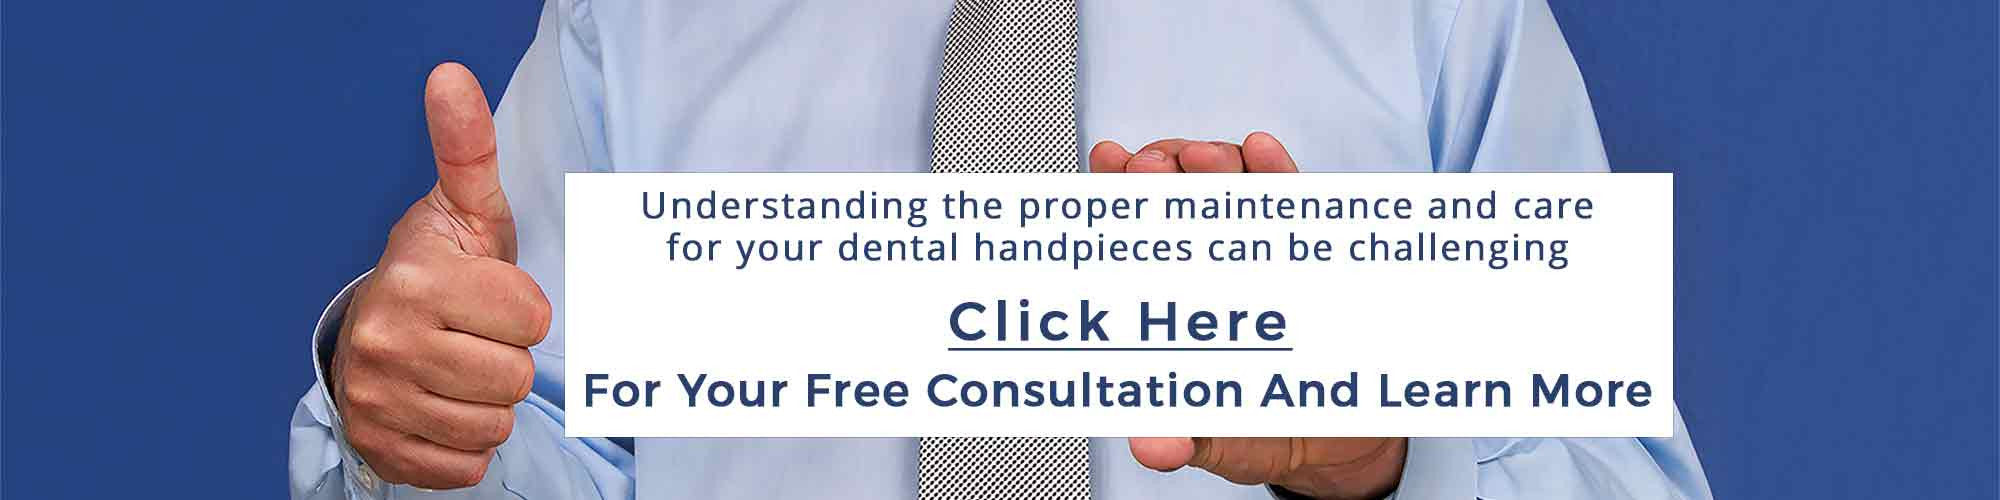 Request Your Handpiece Maintenance Free Consultation